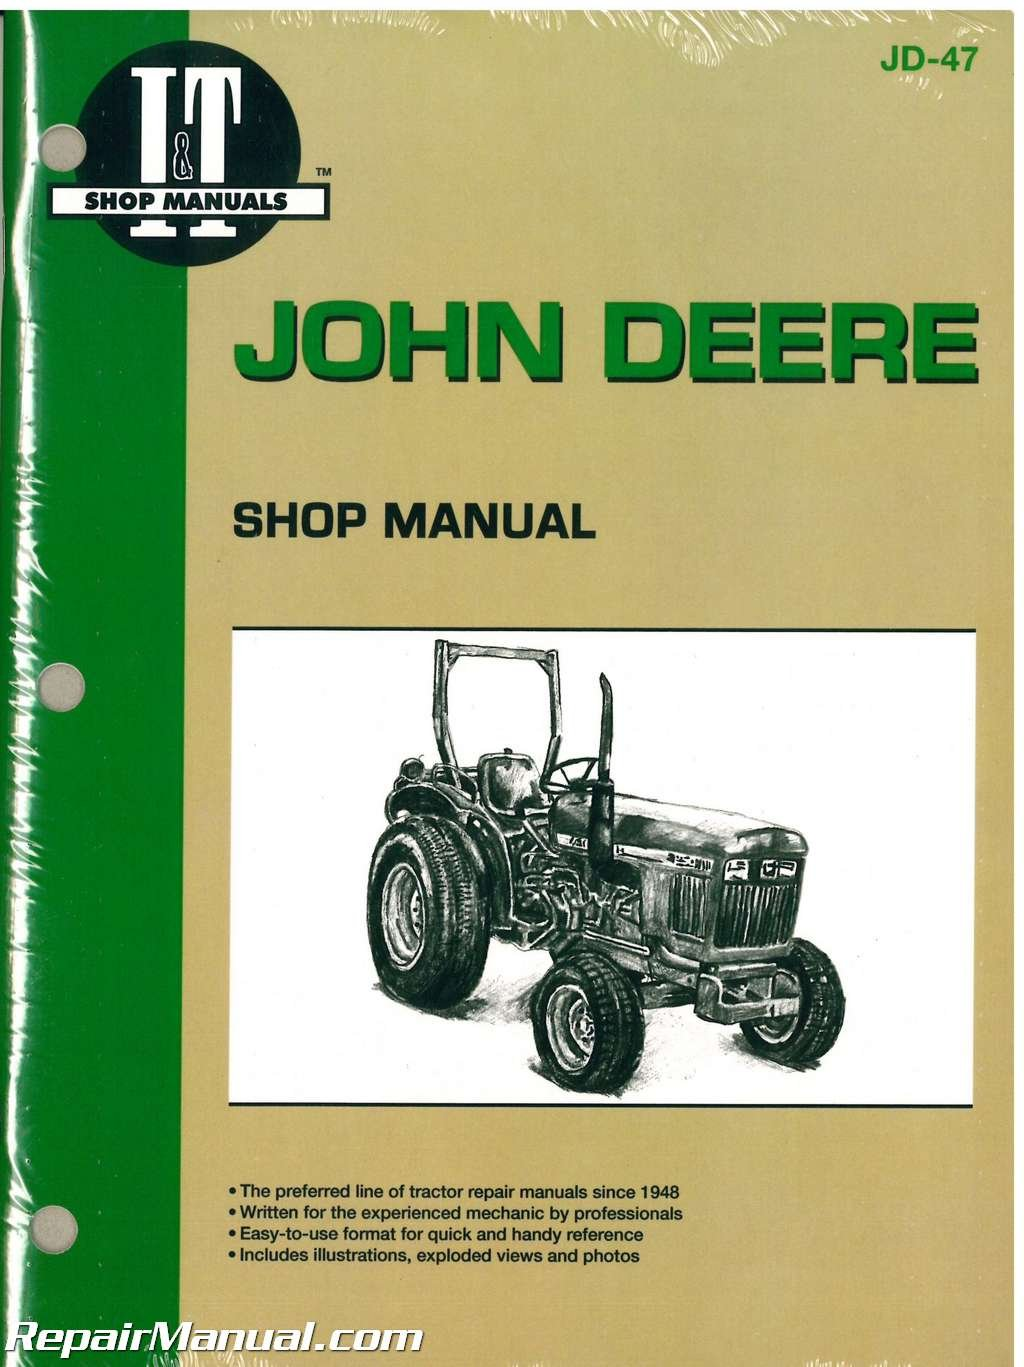 JD-47 John Deere 850 950 1050 Farm Tractor Workshop Manual: Manufacturer:  Amazon.com: Books